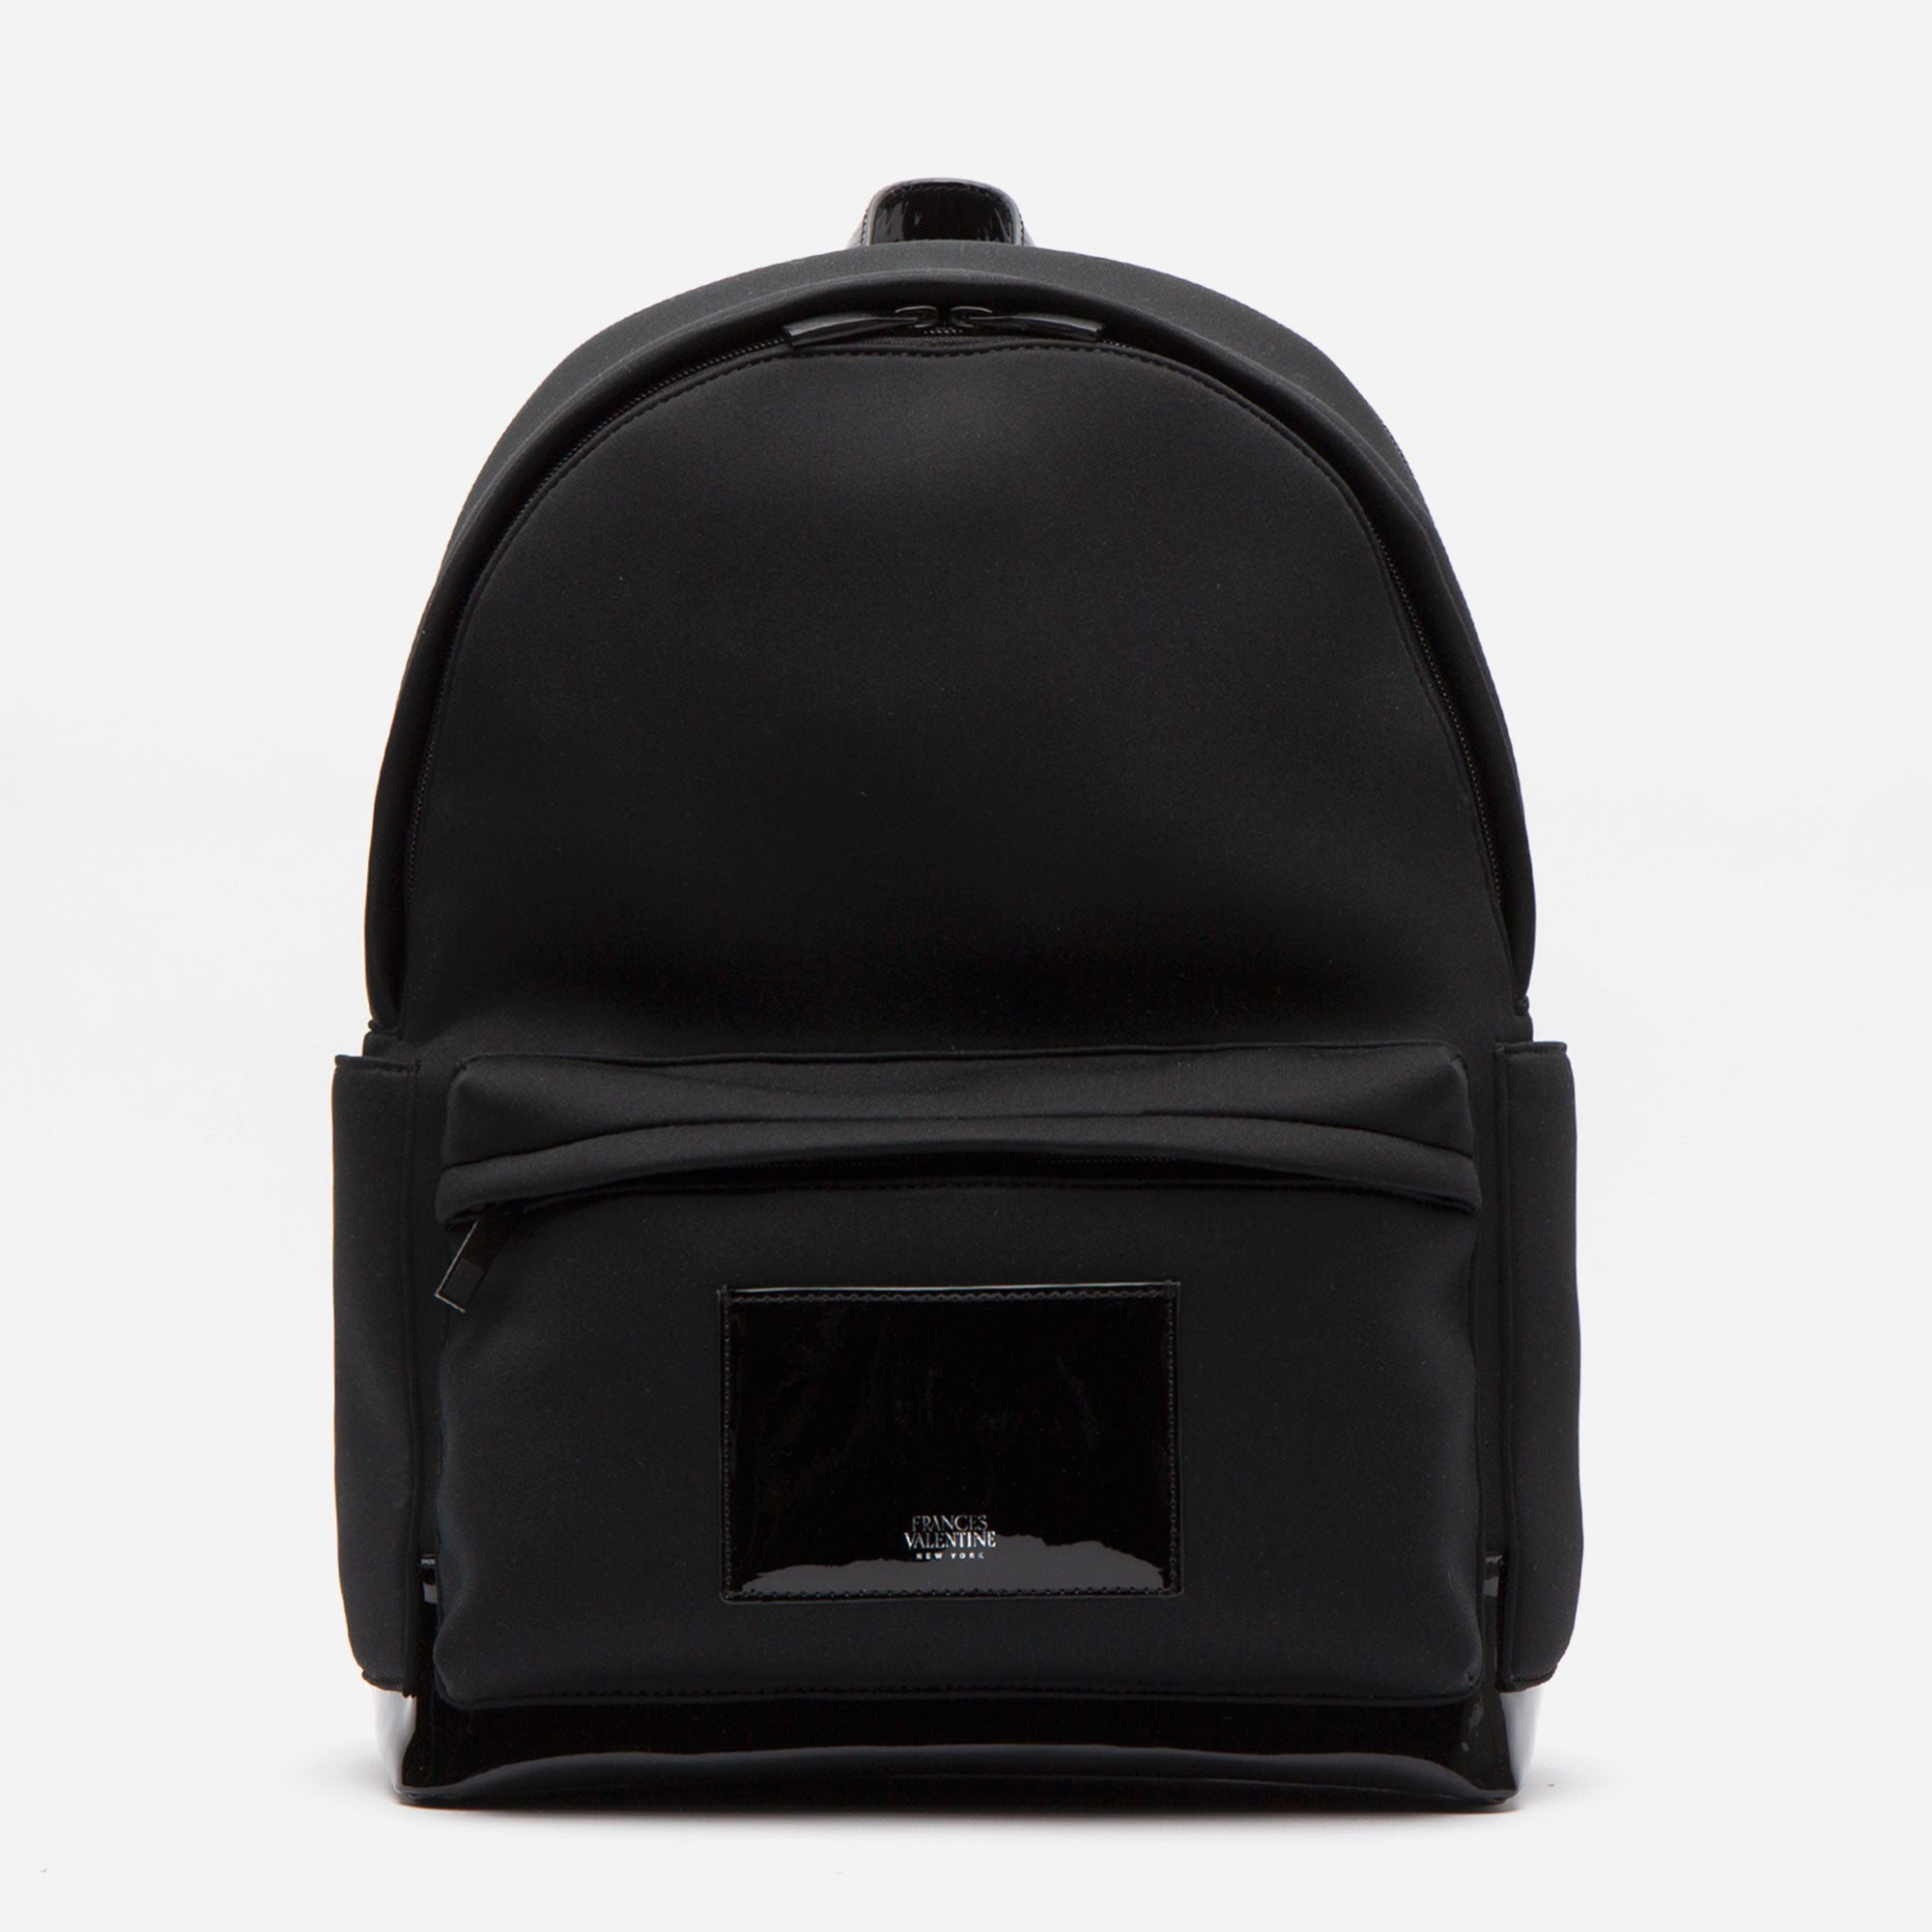 Neoprene Backpack Black